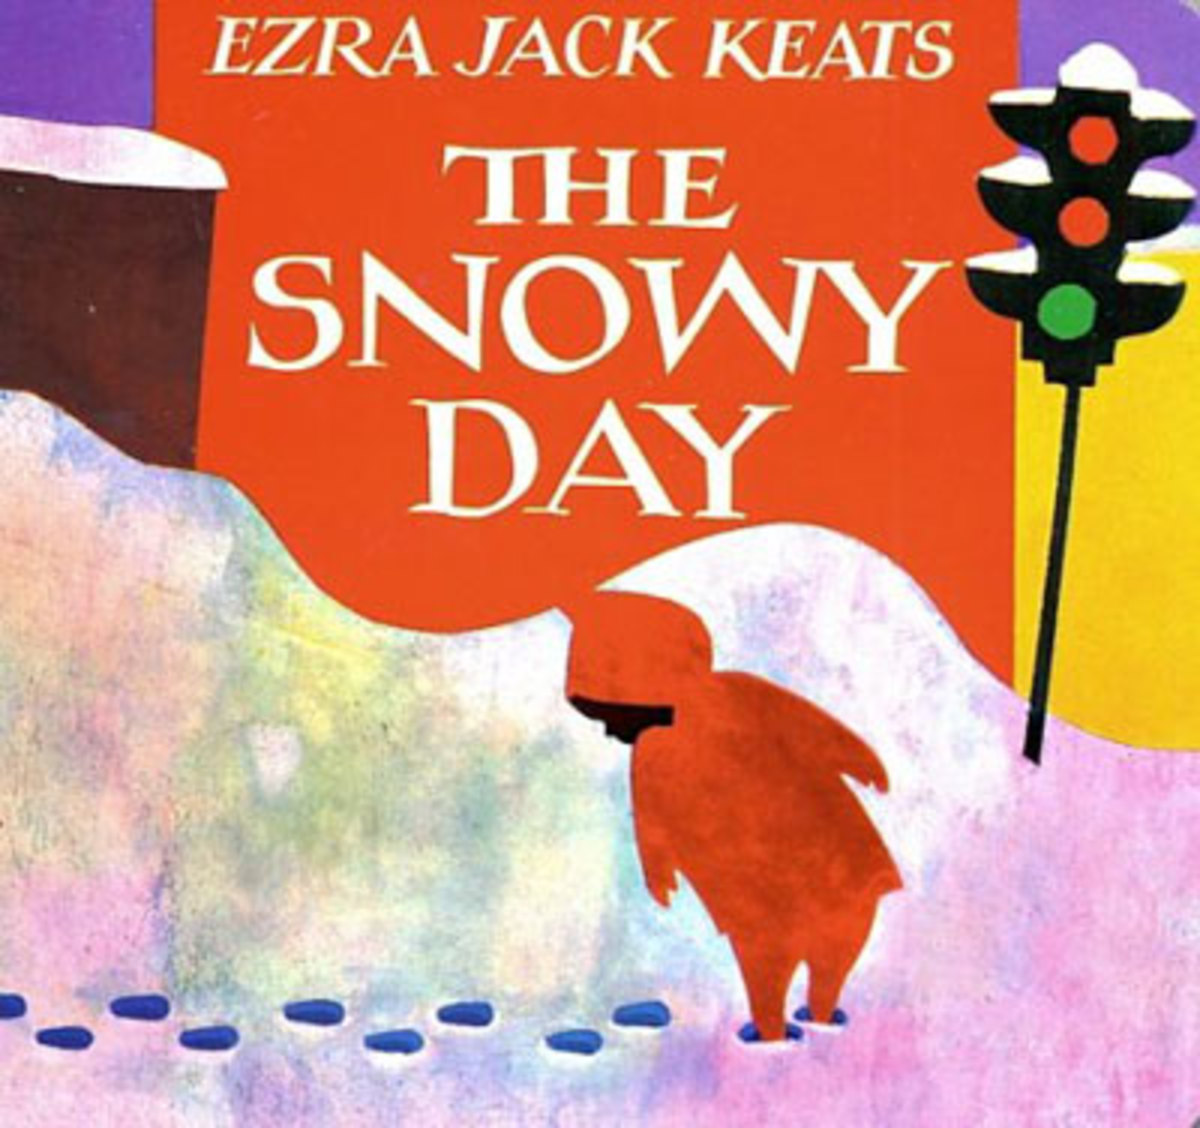 The Snowy Day by Ezra Jack Keats front cover, ISBN 9780670867332